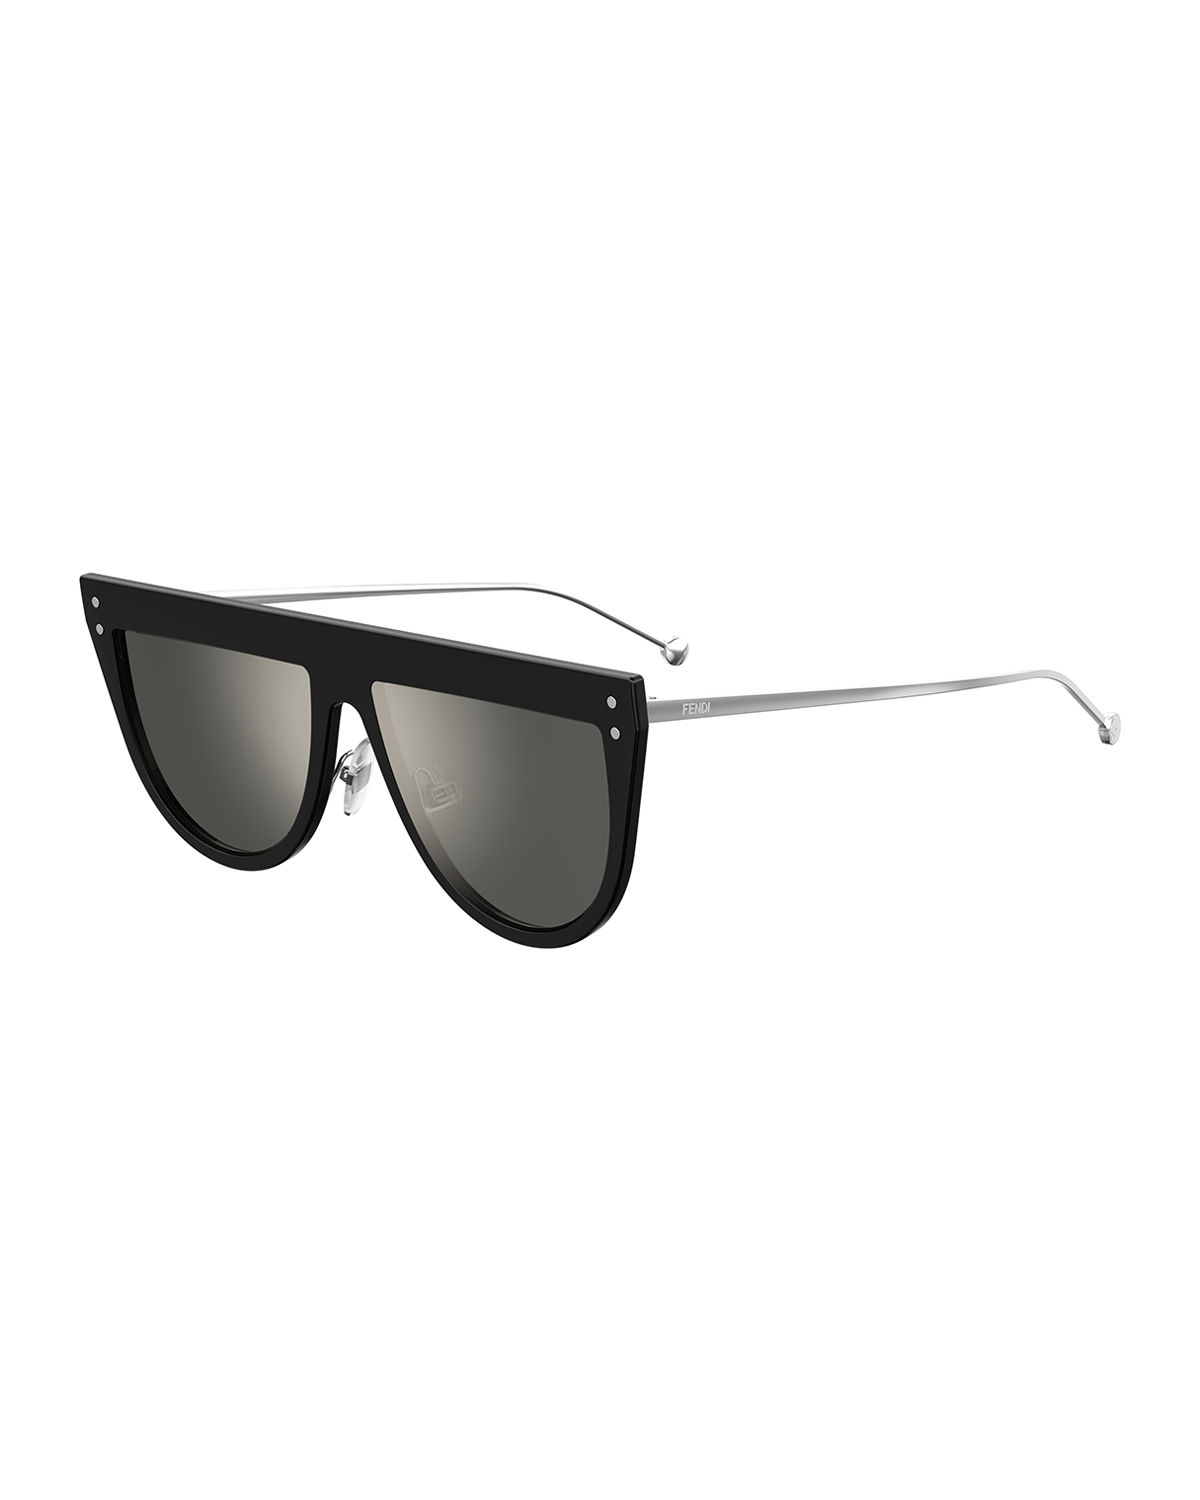 2448dd41de Fendi Flat-Top Mirrored Shield Sunglasses